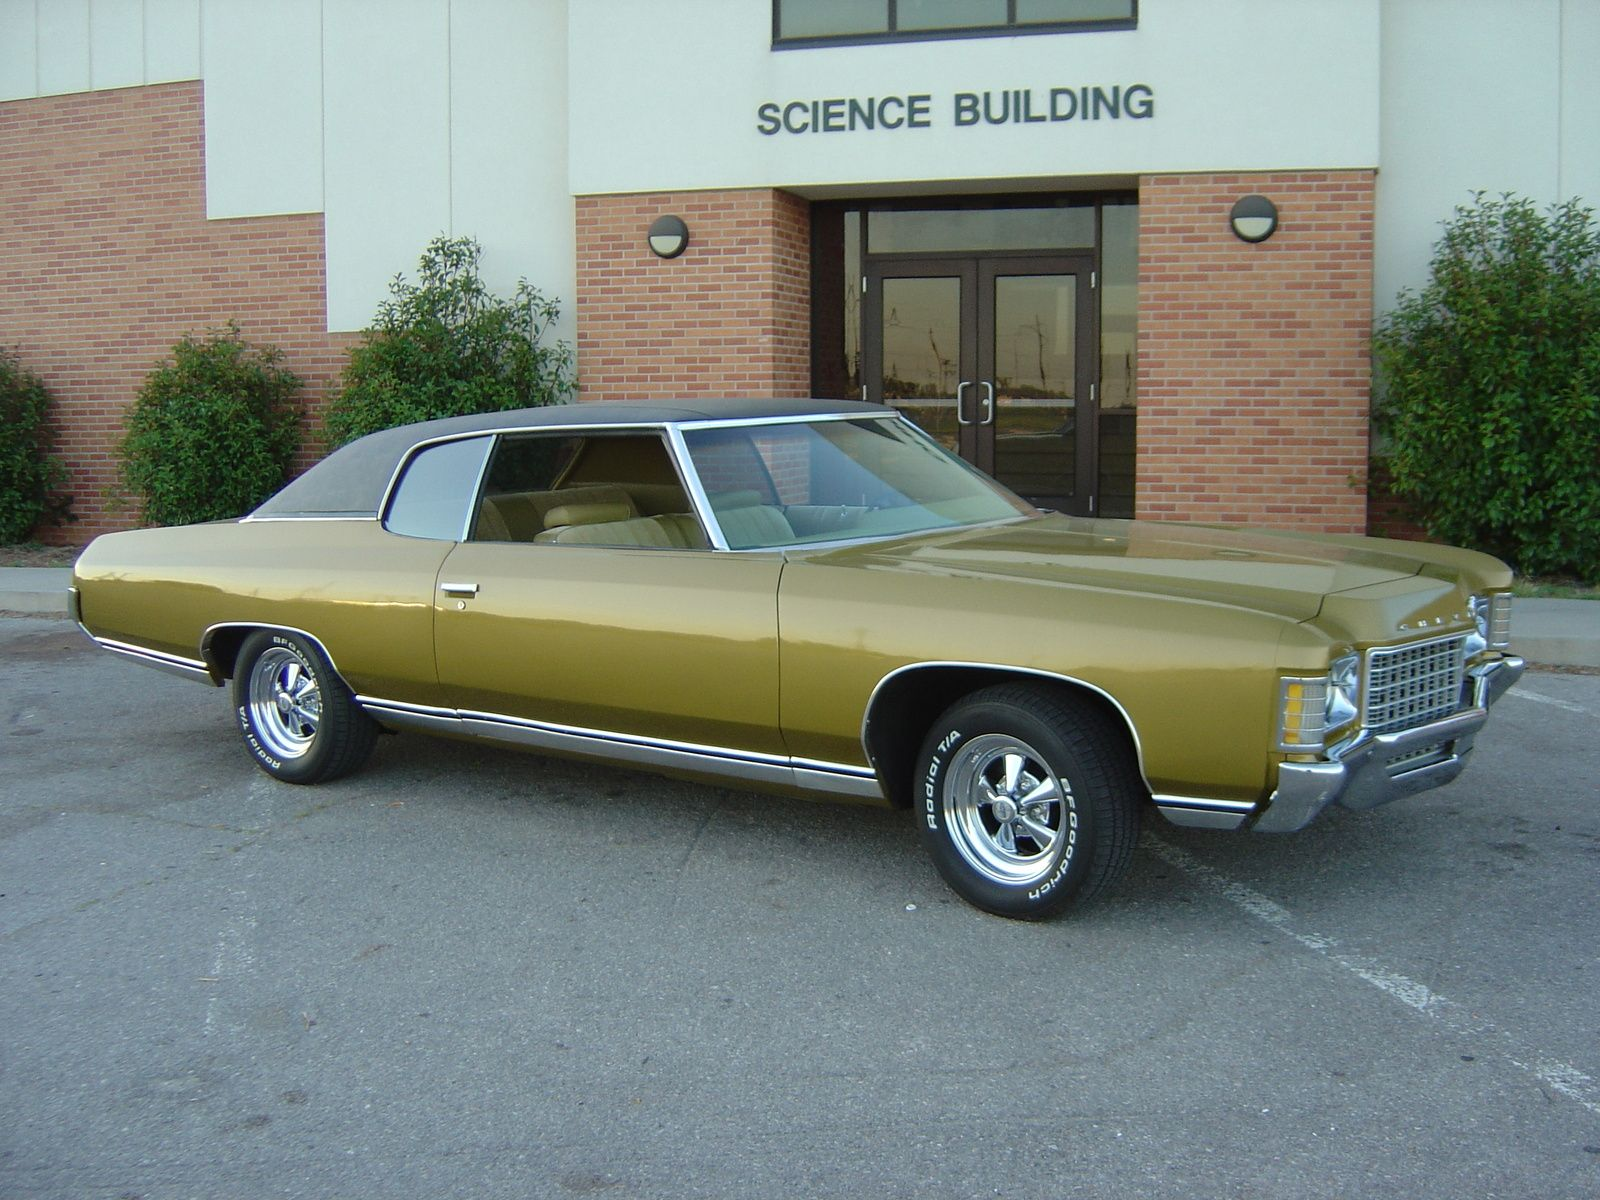 1971 Chevrolet Impala My First Car Mine Was Cotton Wood